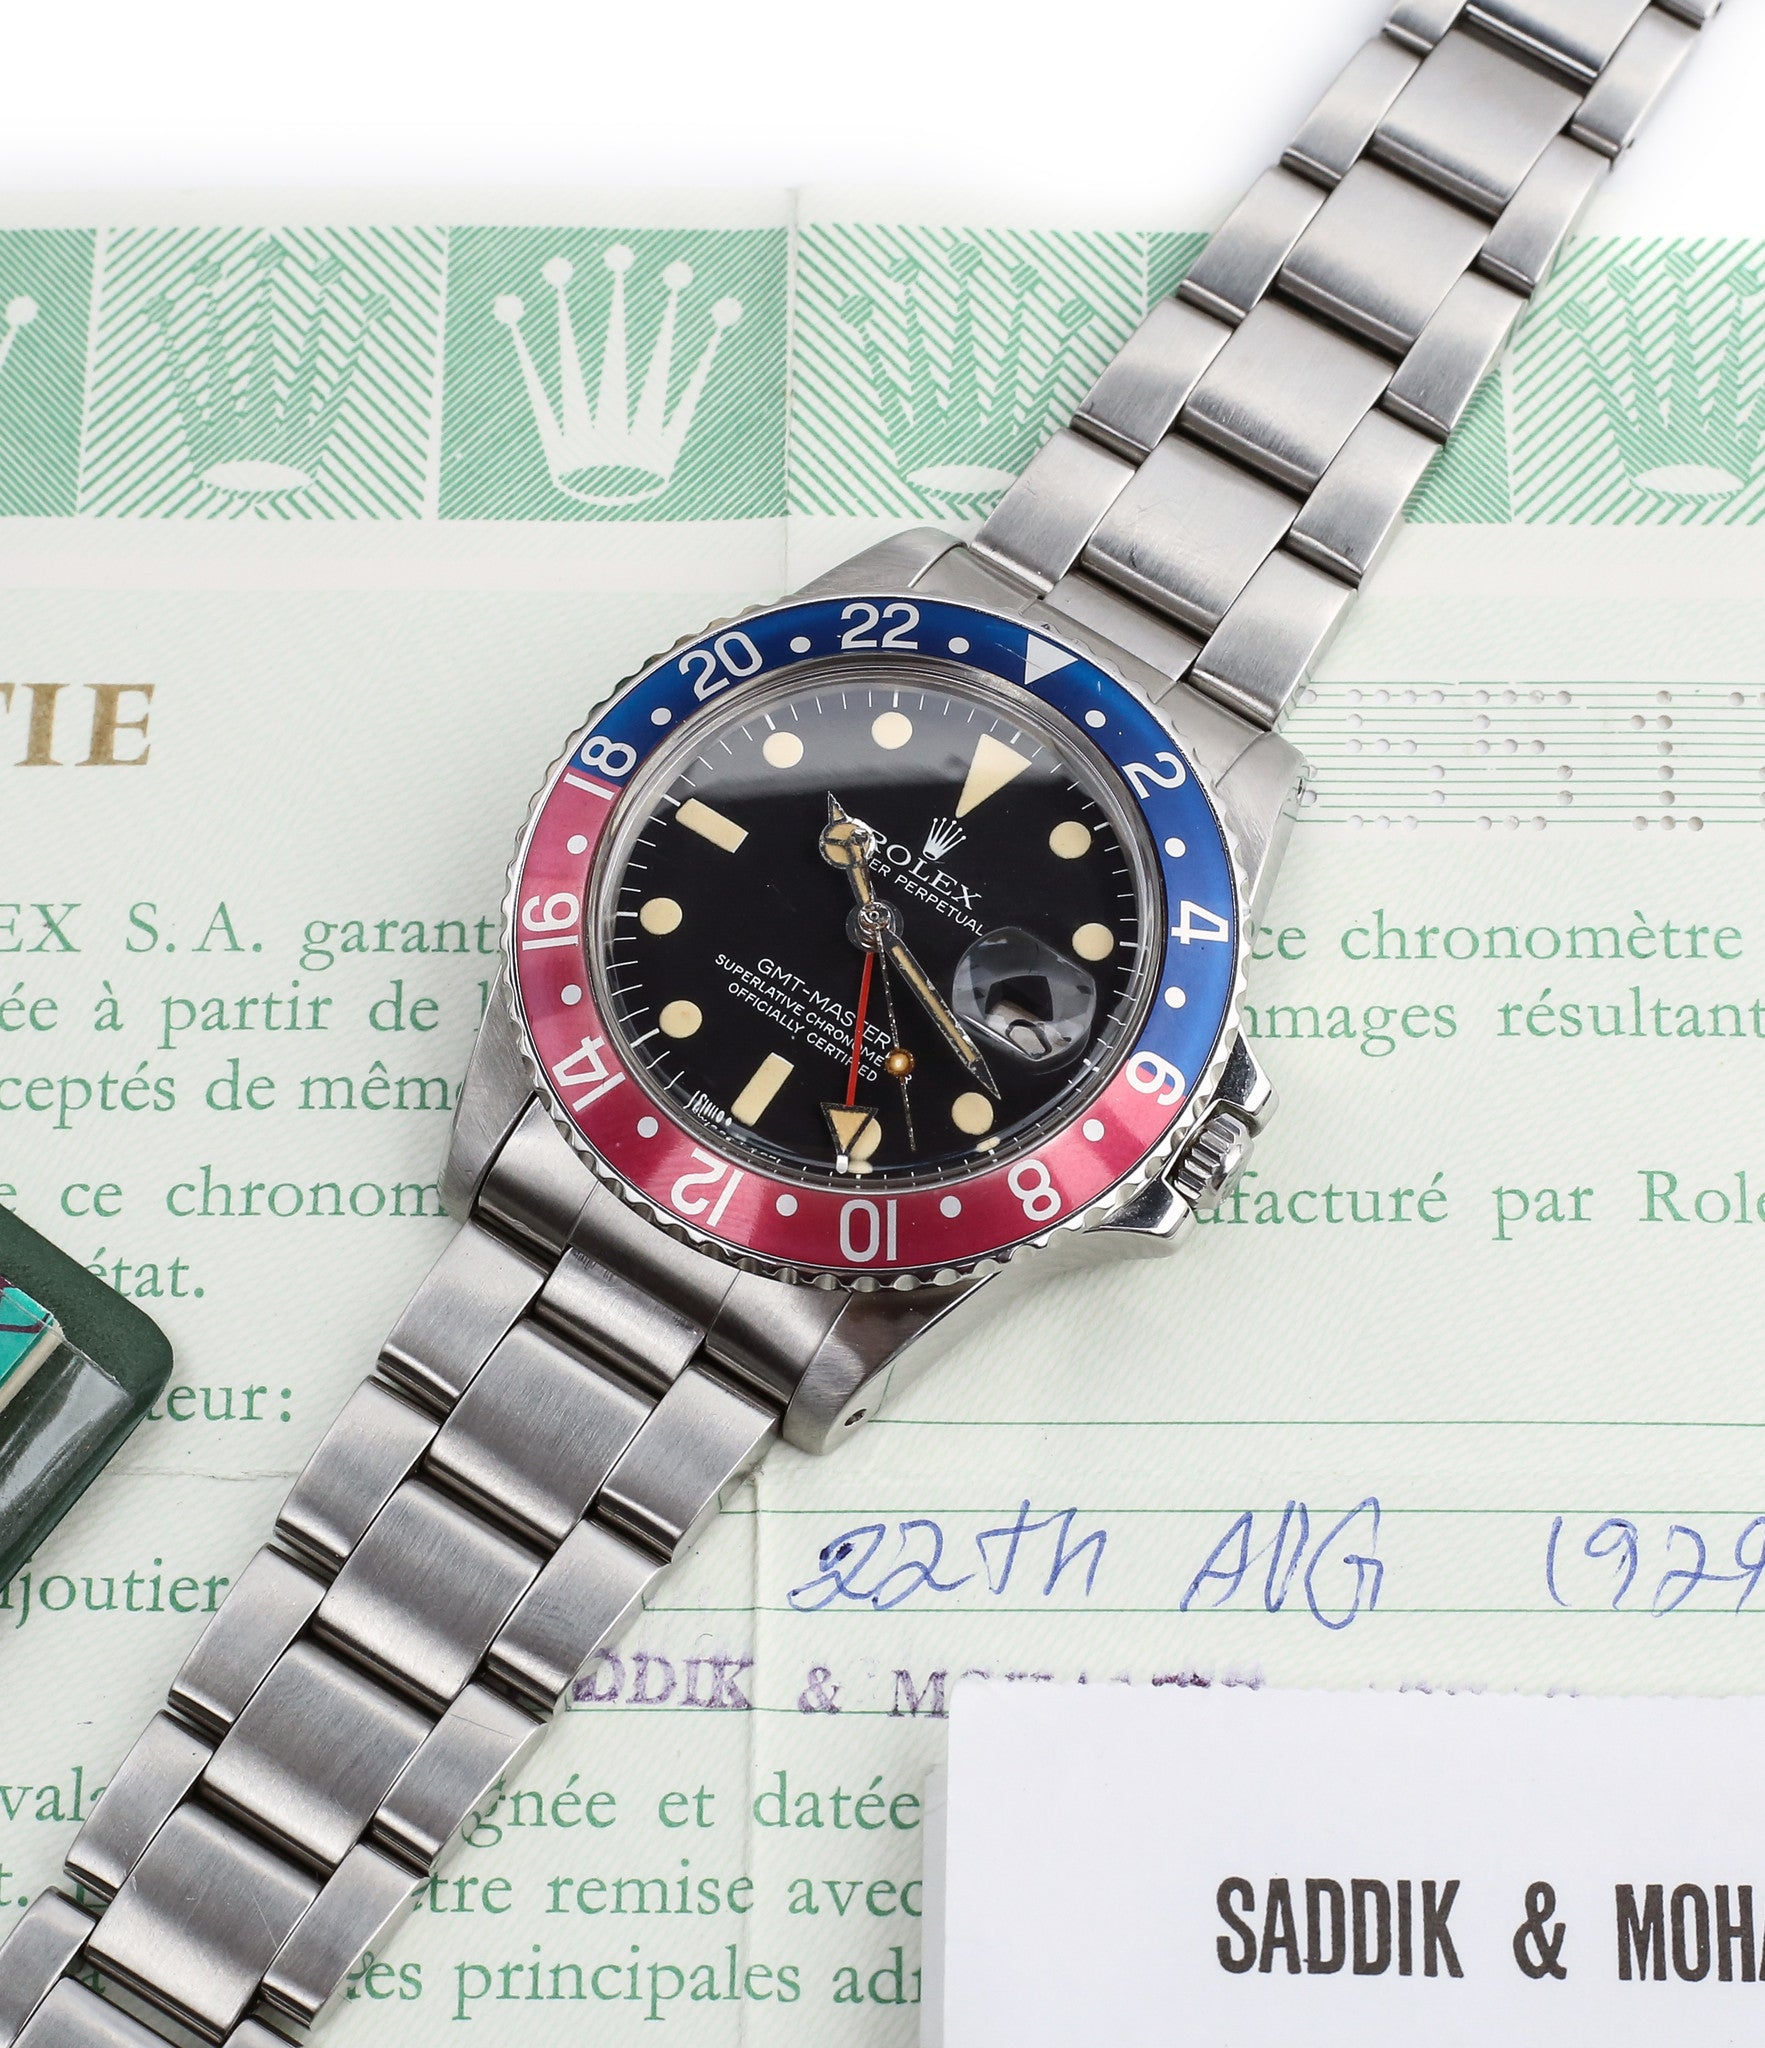 full set vintage Rolex GMT master 1675 steel watch Pepsi bezel rare full set chronometer for sale from online WATCH XCHANGE London